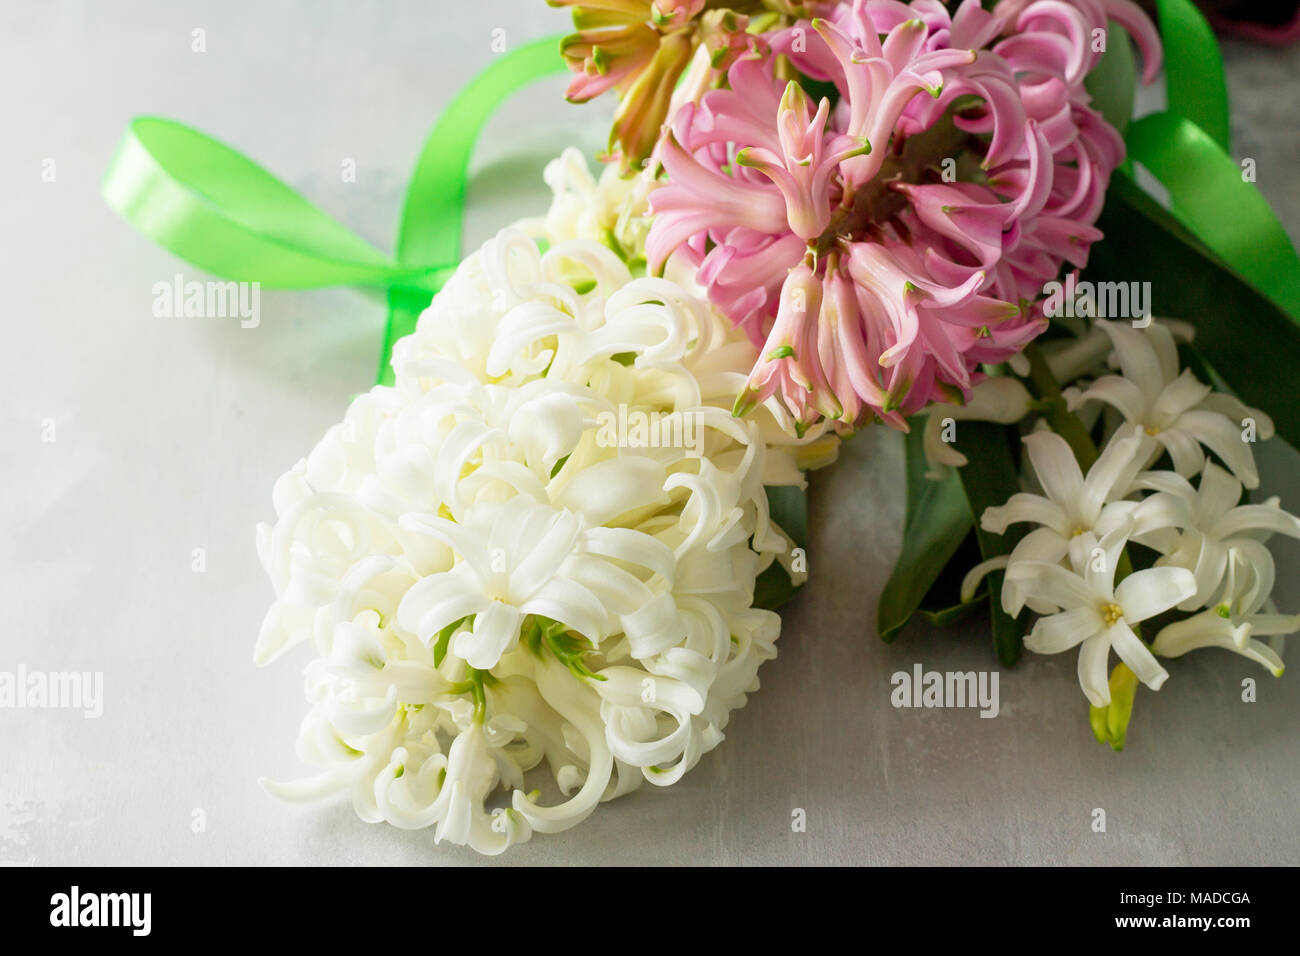 Bouquet Of Hyacinth Flower On Stone Background Or Slate Spring